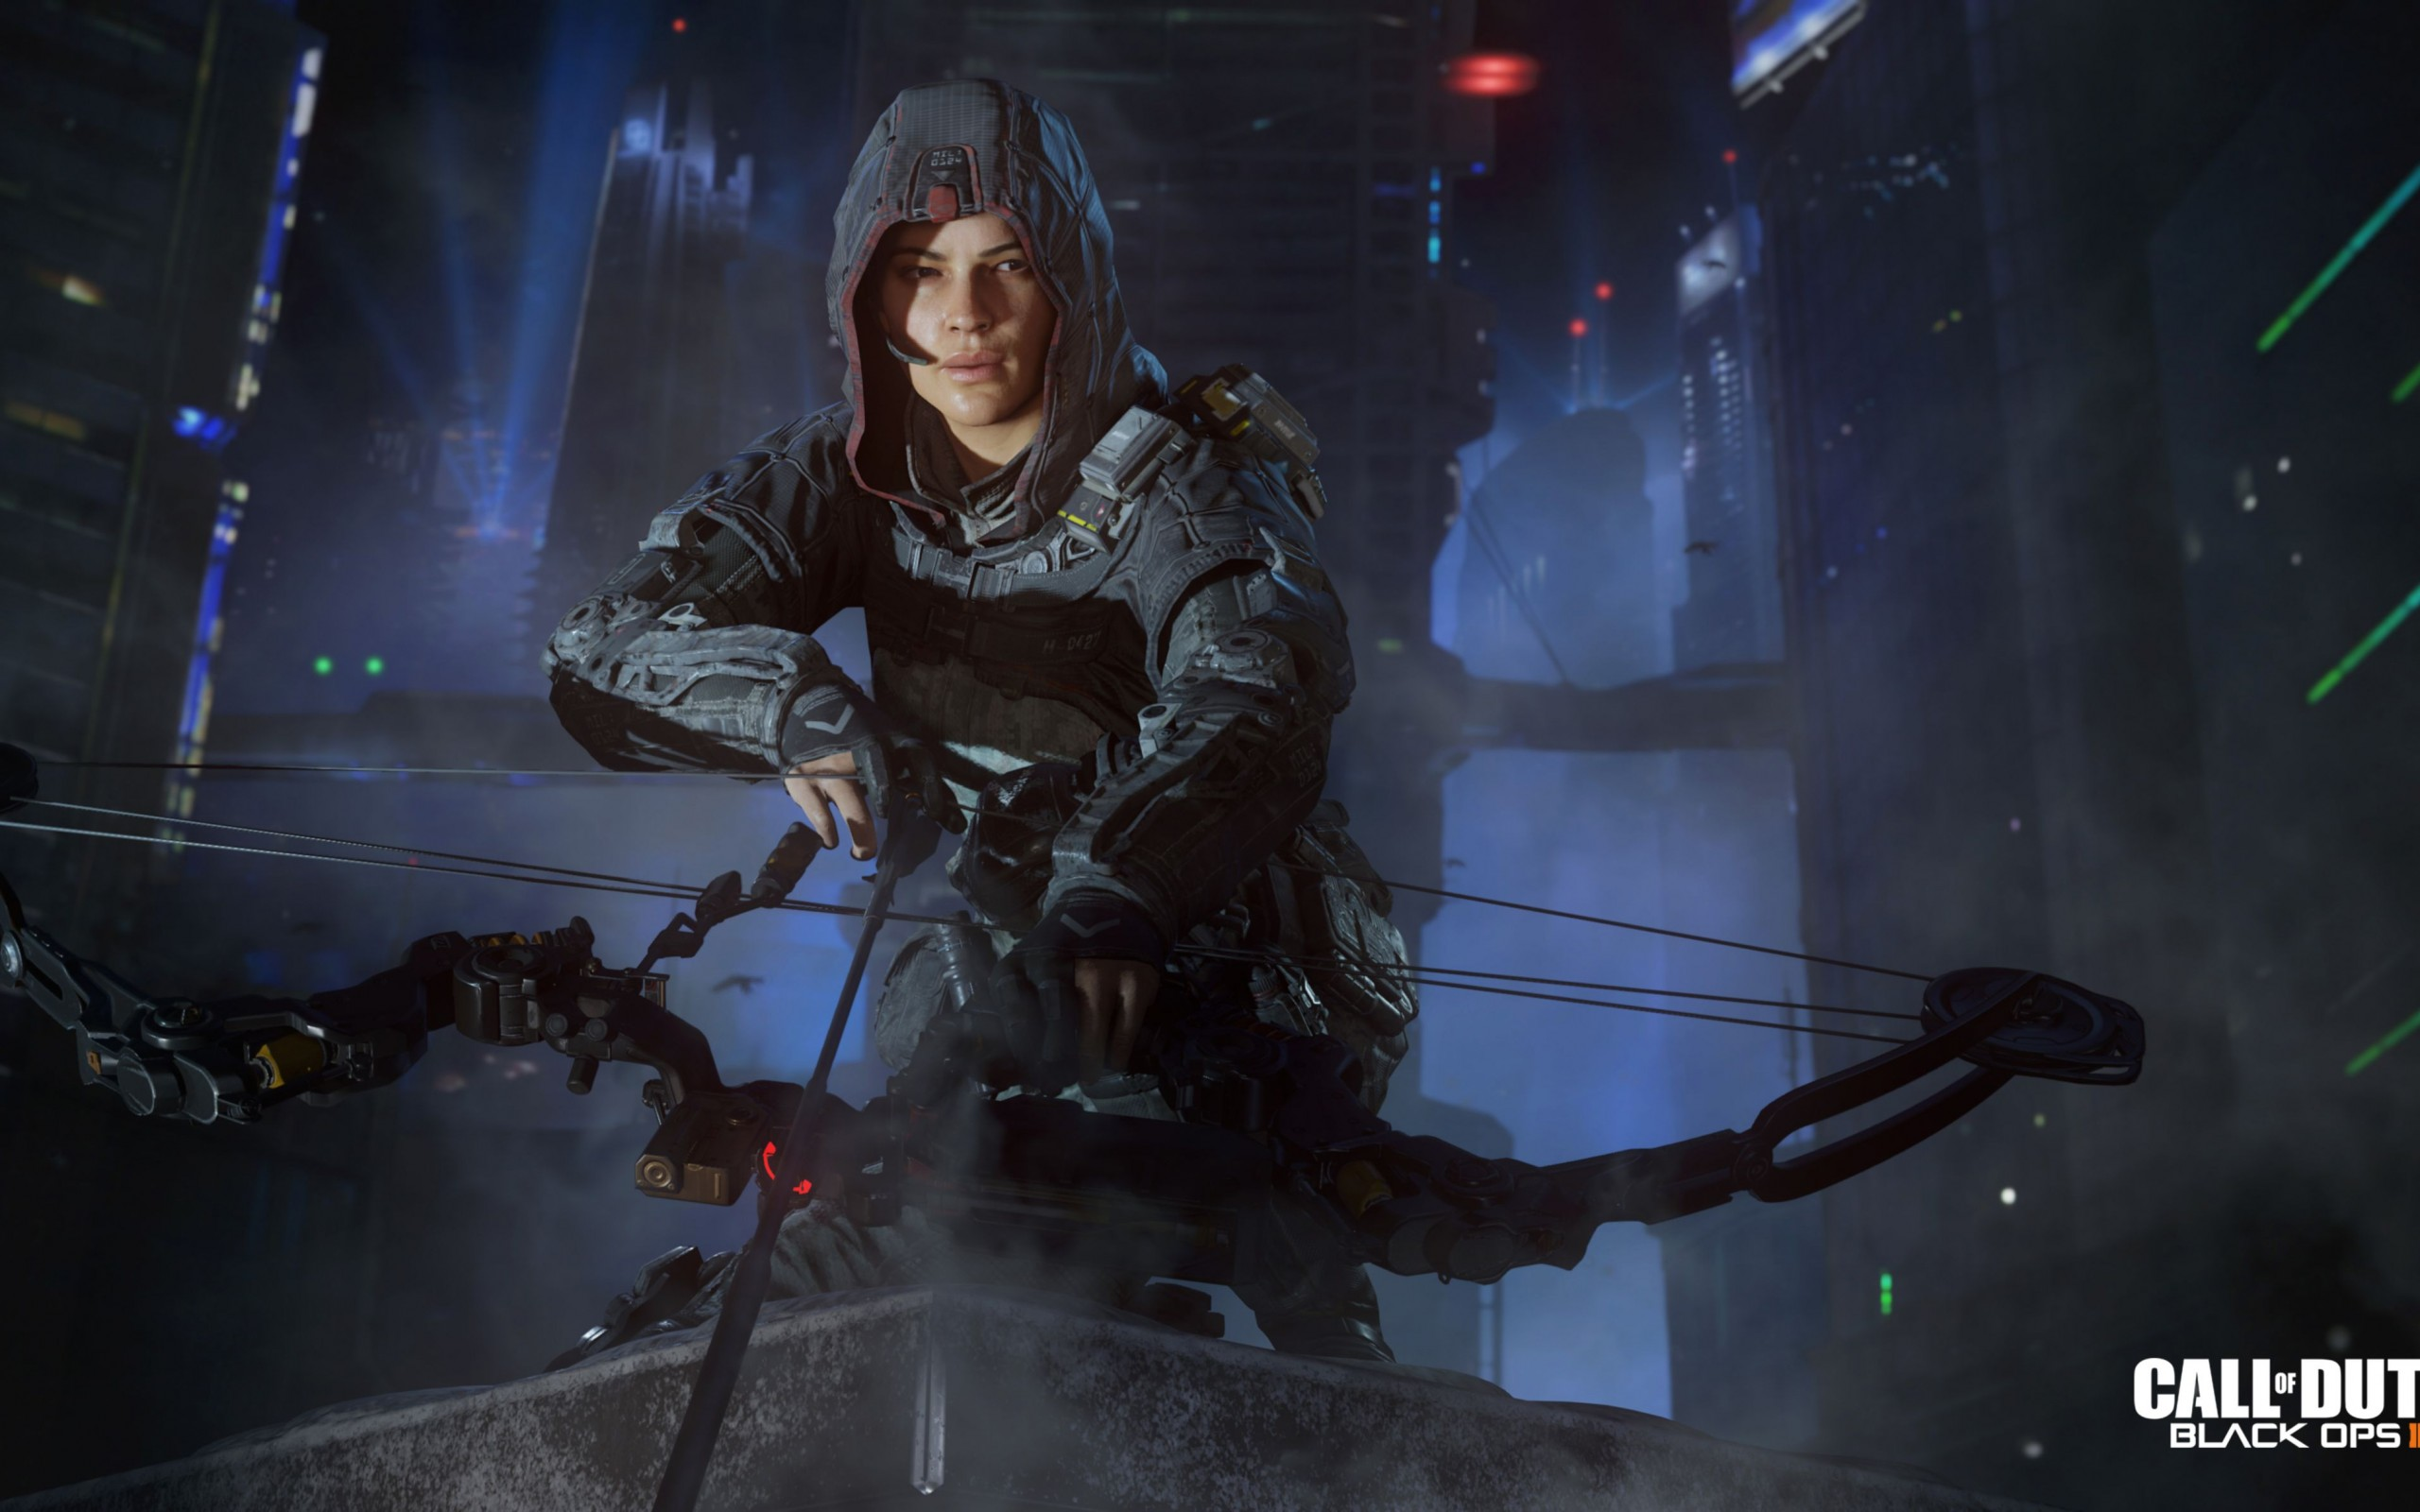 Call Of Duty Black Ops 3 Specialist Outrider HD Wallpaper Desktop